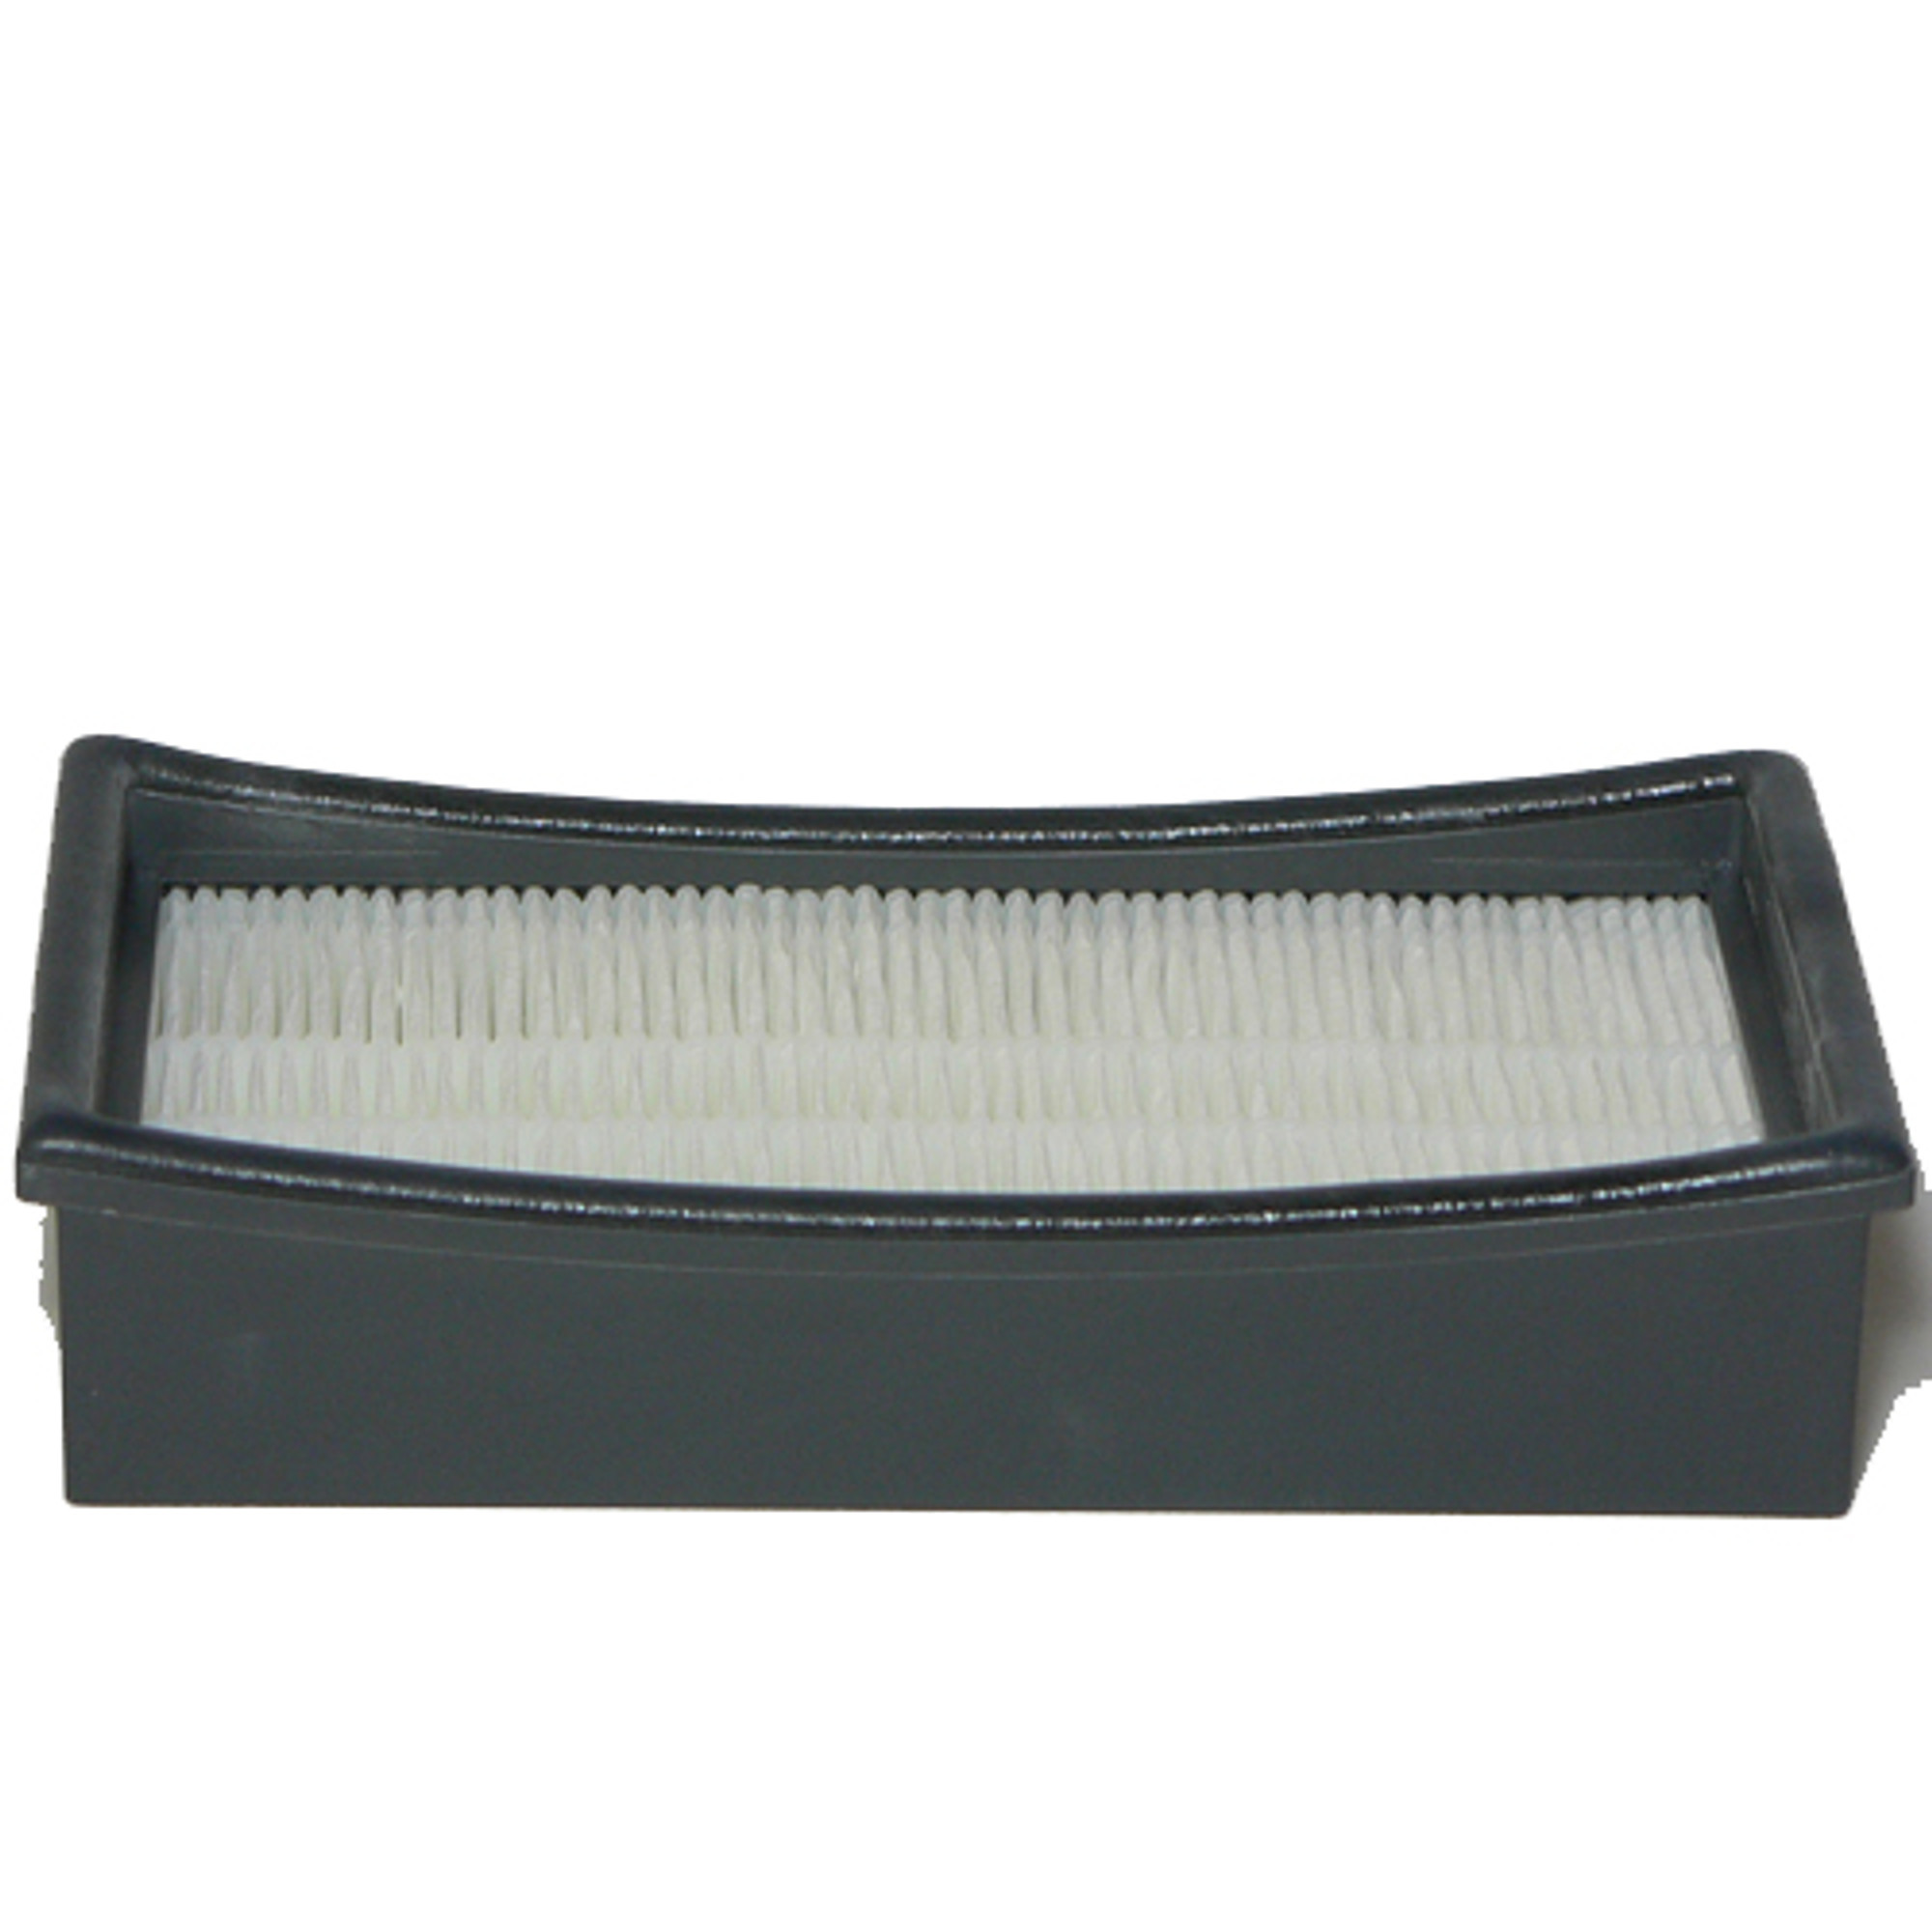 Buy Miele Upright Vacuum Cleaner Hepa Filter Exhaust